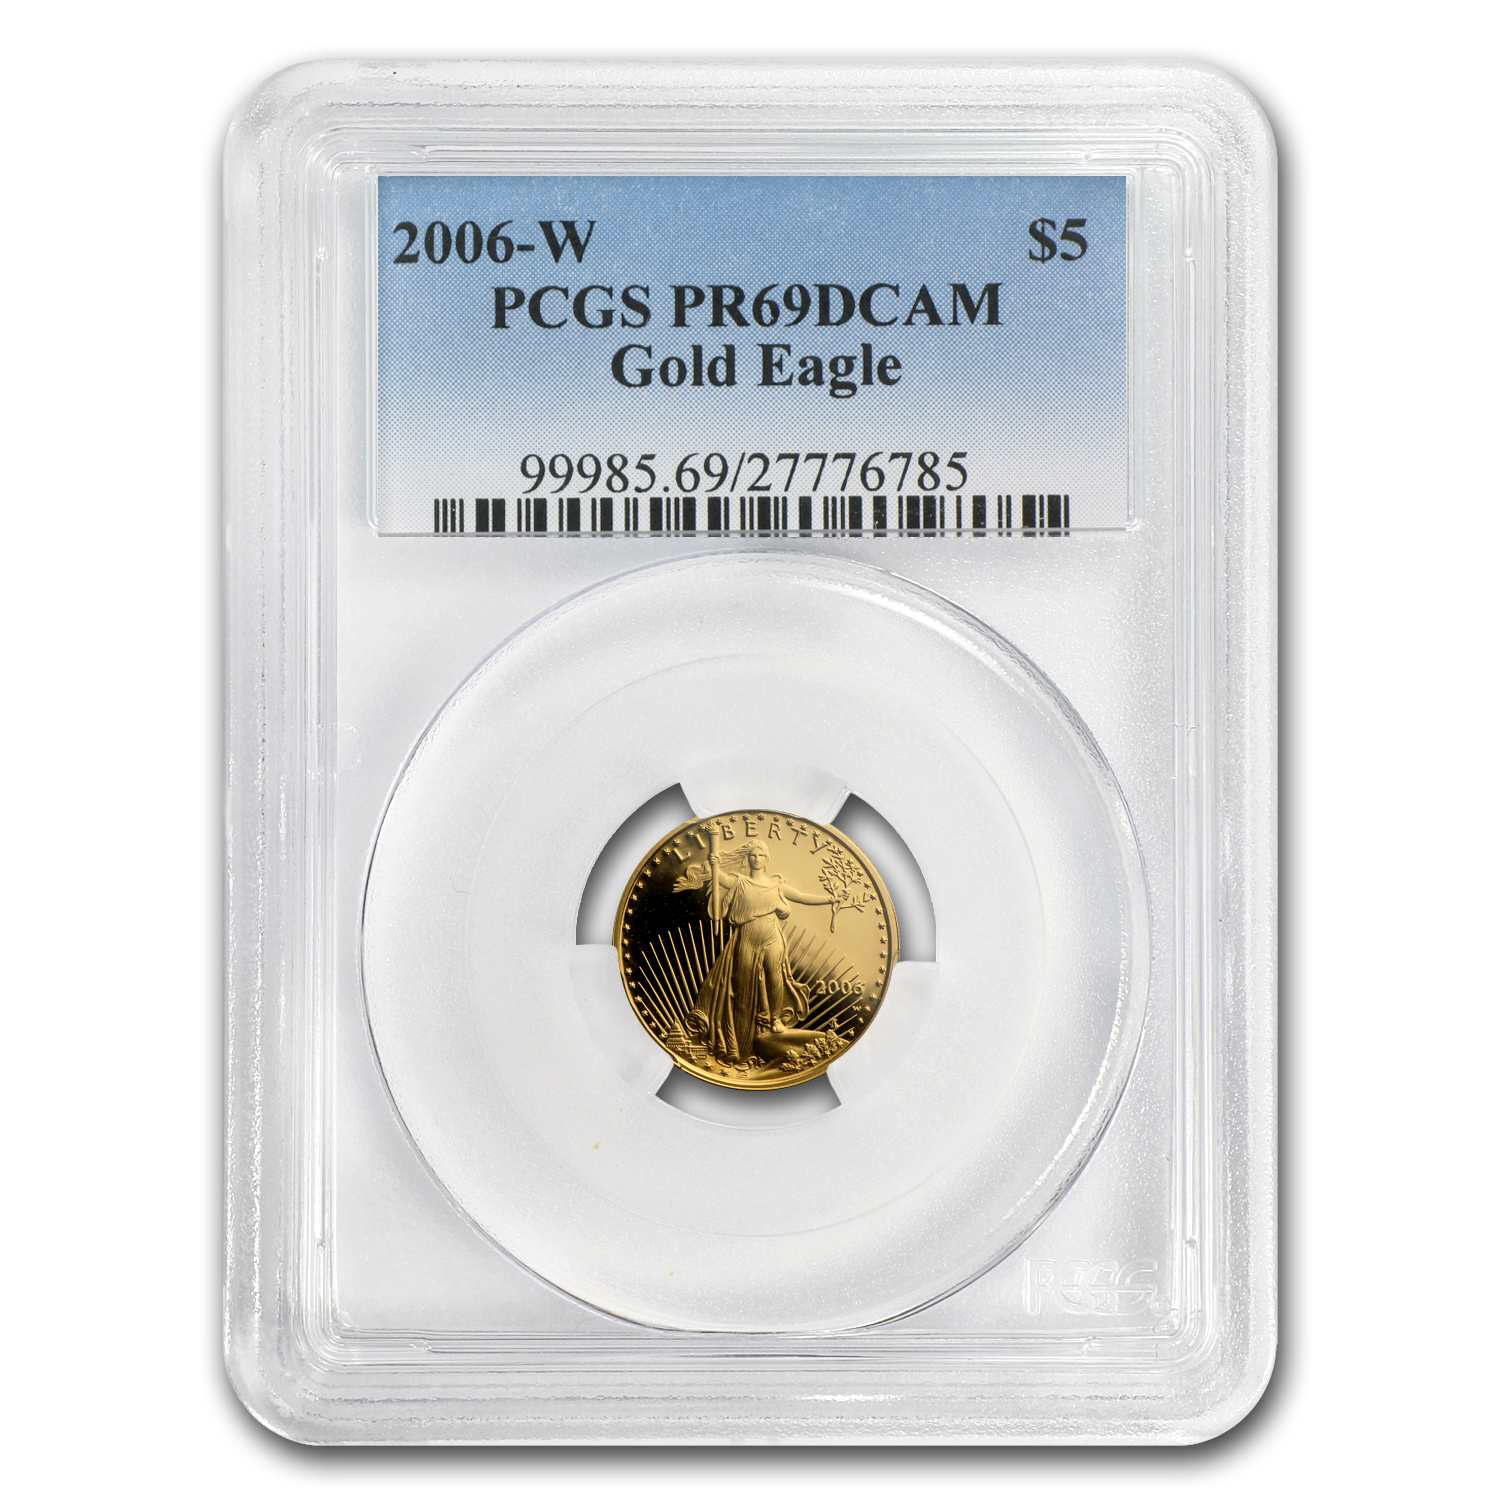 2006-W 1/10 oz Proof Gold American Eagle PR-69 PCGS